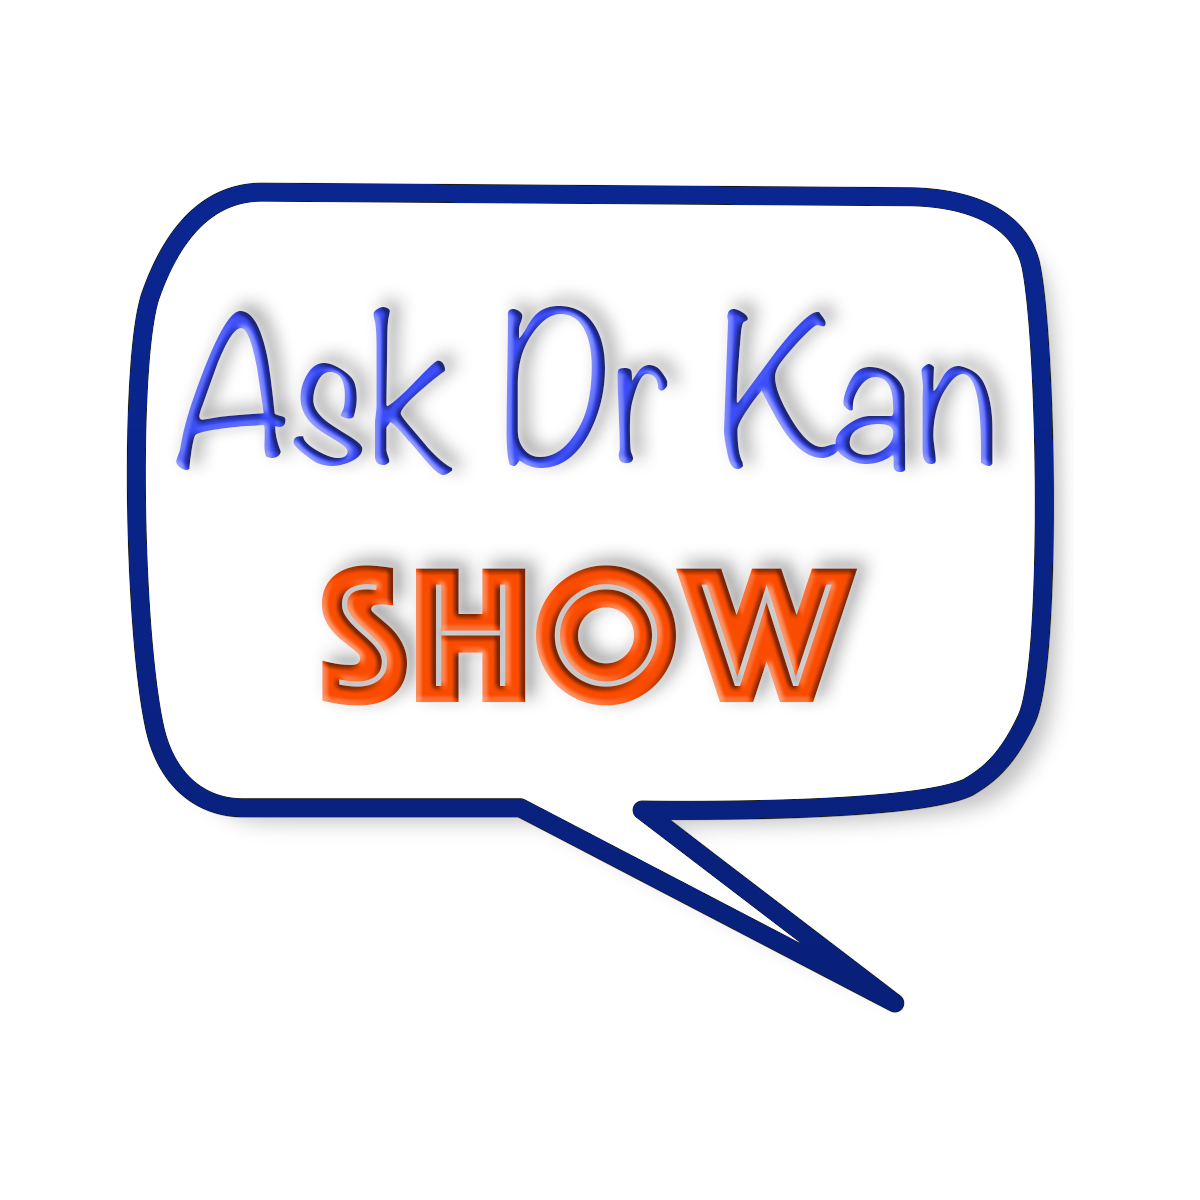 AskDrKan Show – Episode 100: Special Edition! A look back at some of the most popular episodes